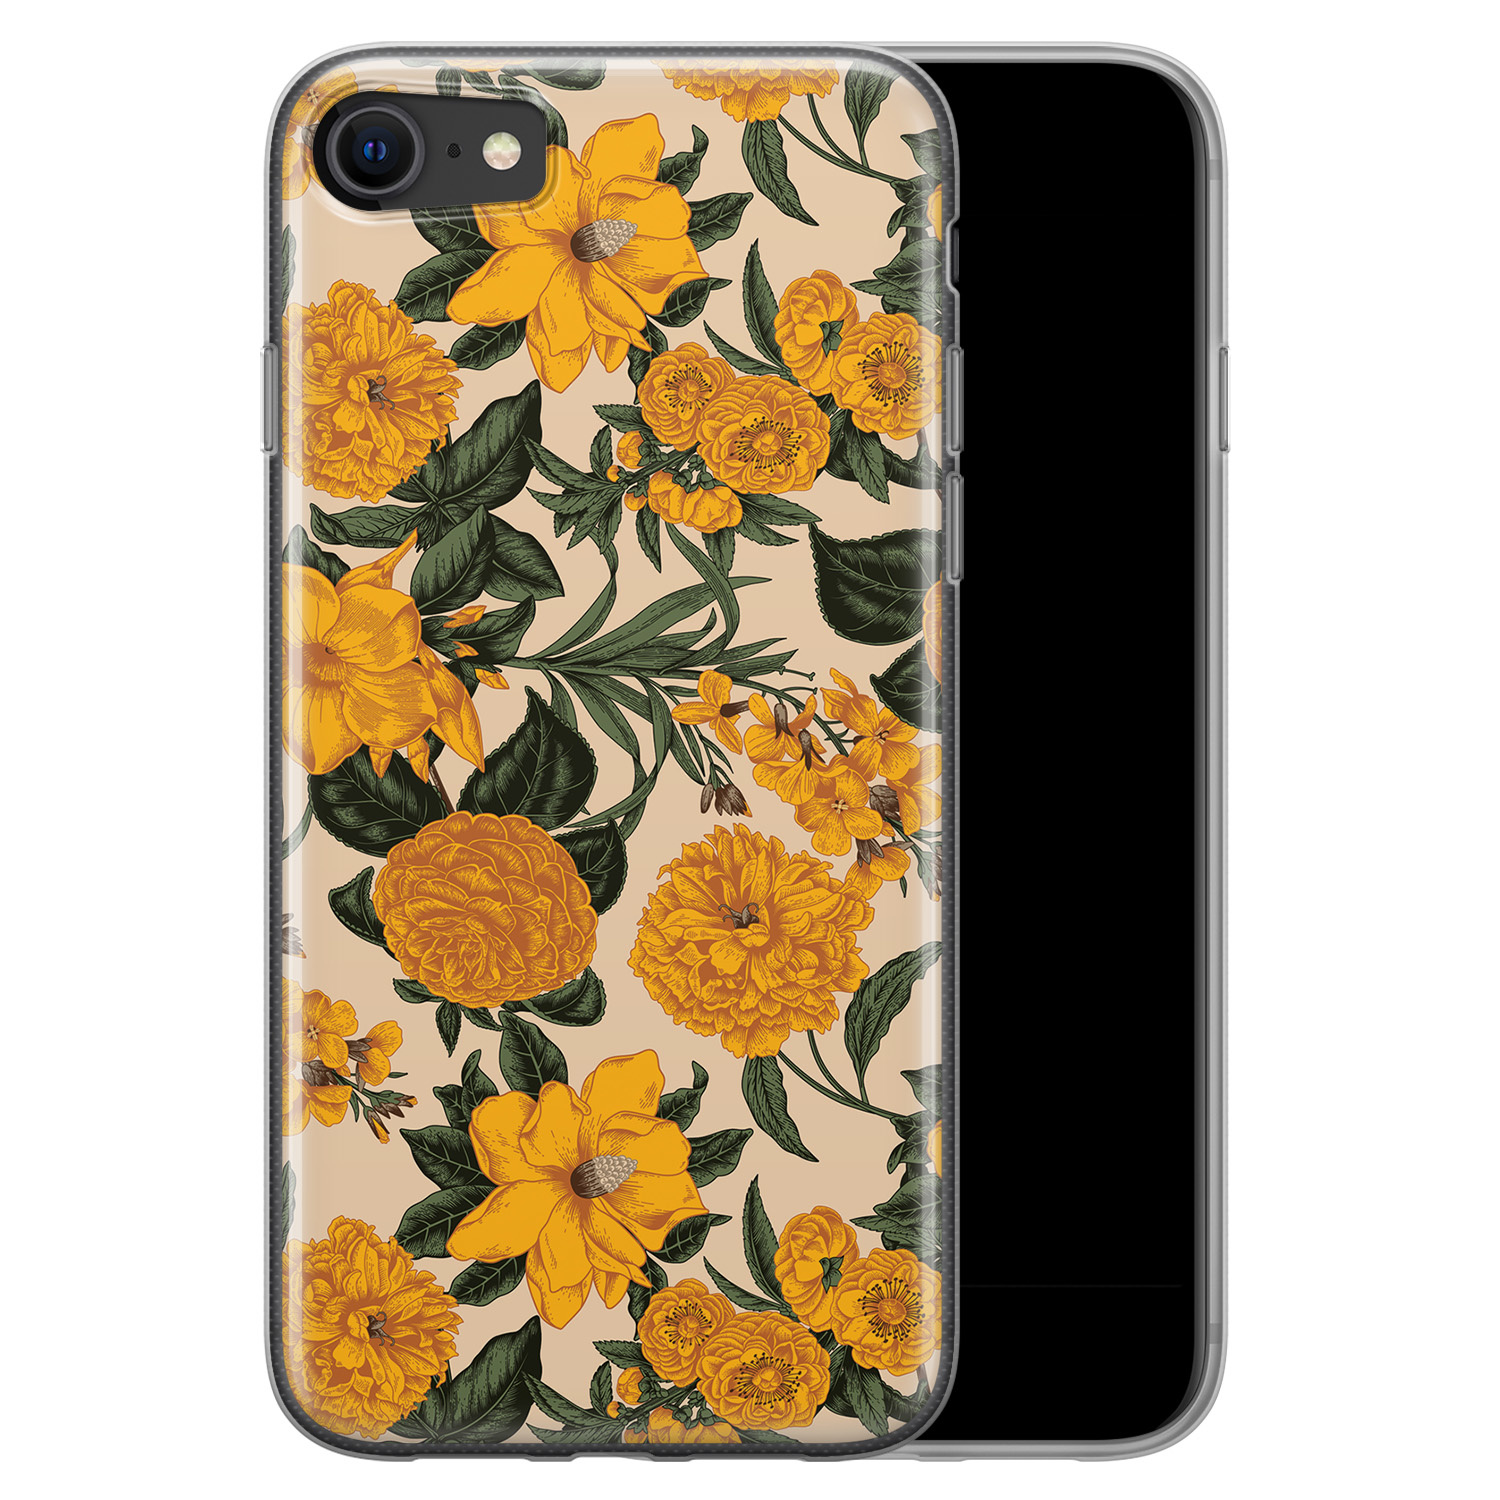 iPhone SE 2020 siliconen hoesje - Retro flowers